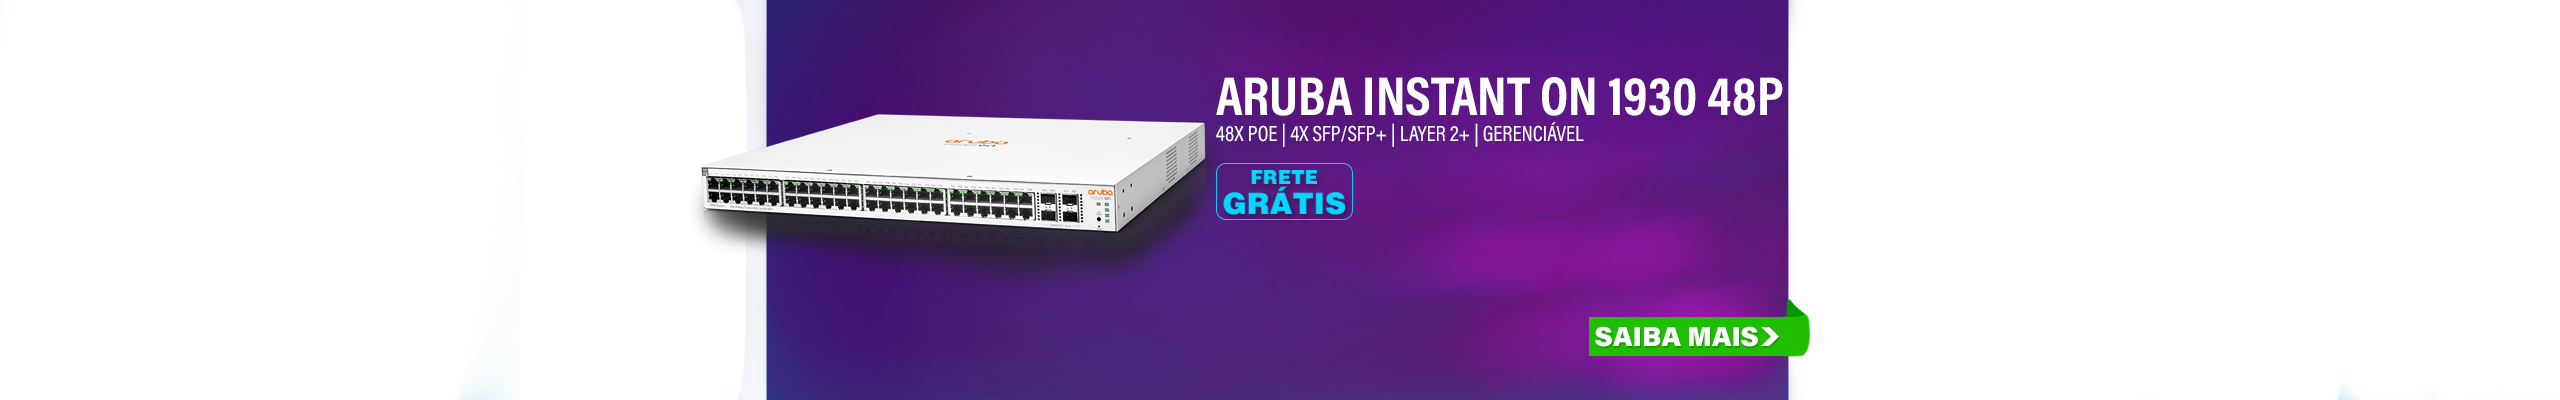 SWITCH HPE | ARUBA INSTANT ON 1930 | 48 PORTAS GIGABIT | 48X POE 370W CLASS 4 | 4X SFP/SFP+ (1/10GBE) | LAYER 2+ | GERENCIÁVEL | MPN: JL686A